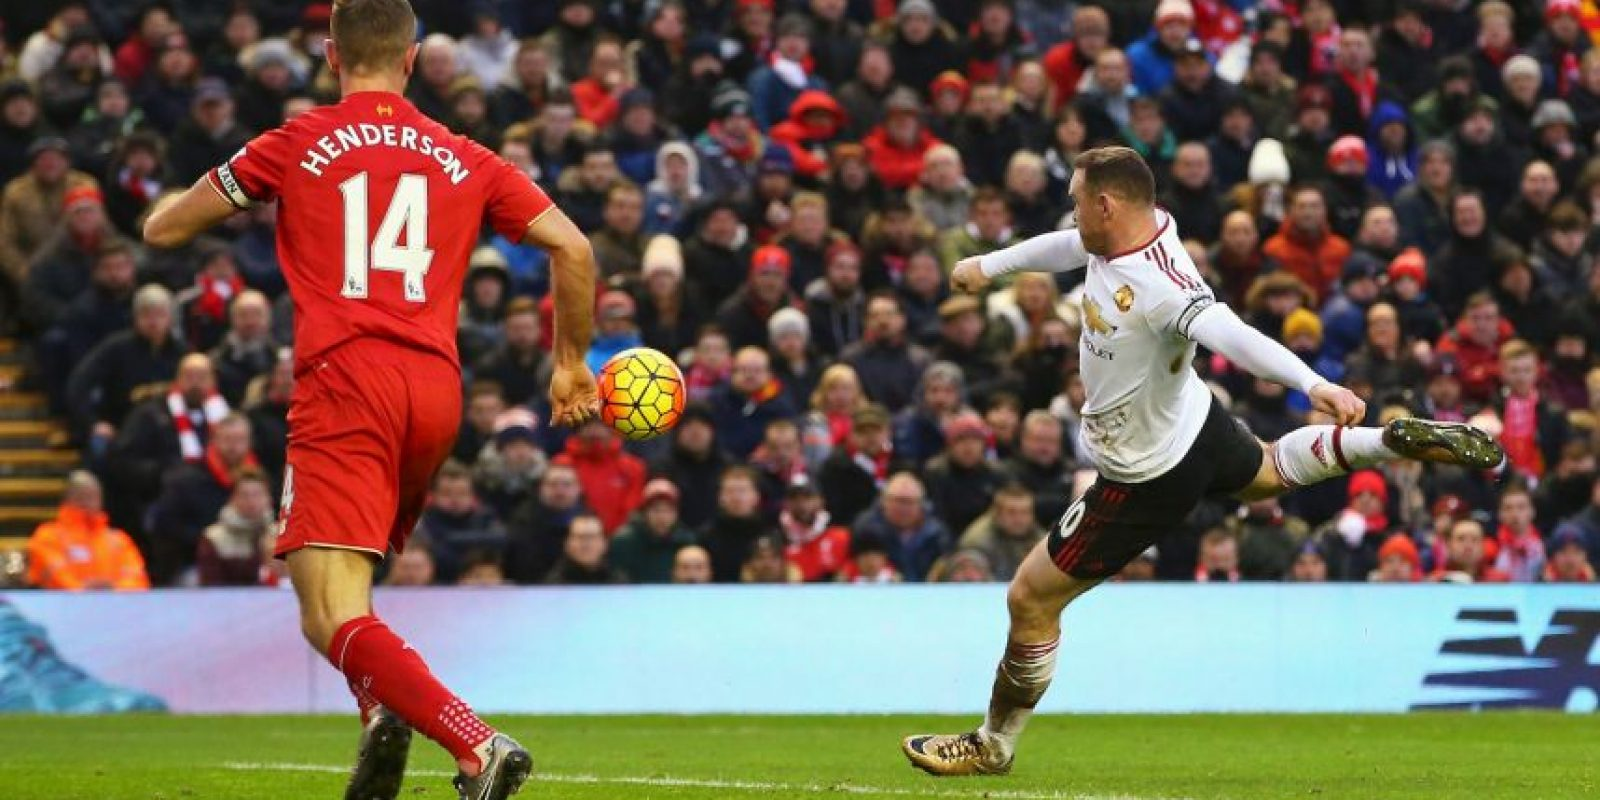 Liverpool vs. Manchester United Foto: Getty Images